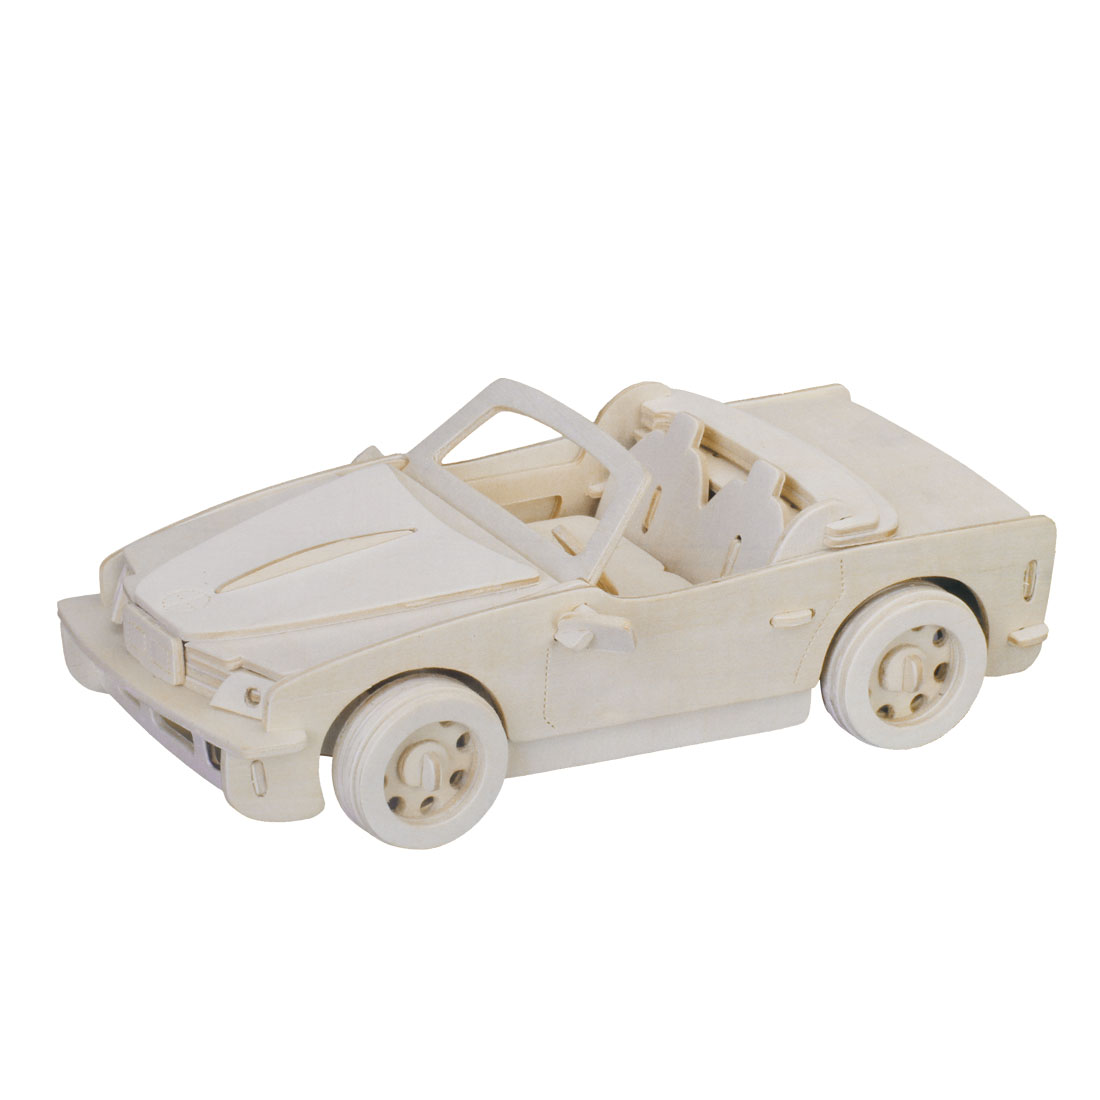 Wooden Woodcraft Educational Auto Car Puzzle Model Toy for Kids